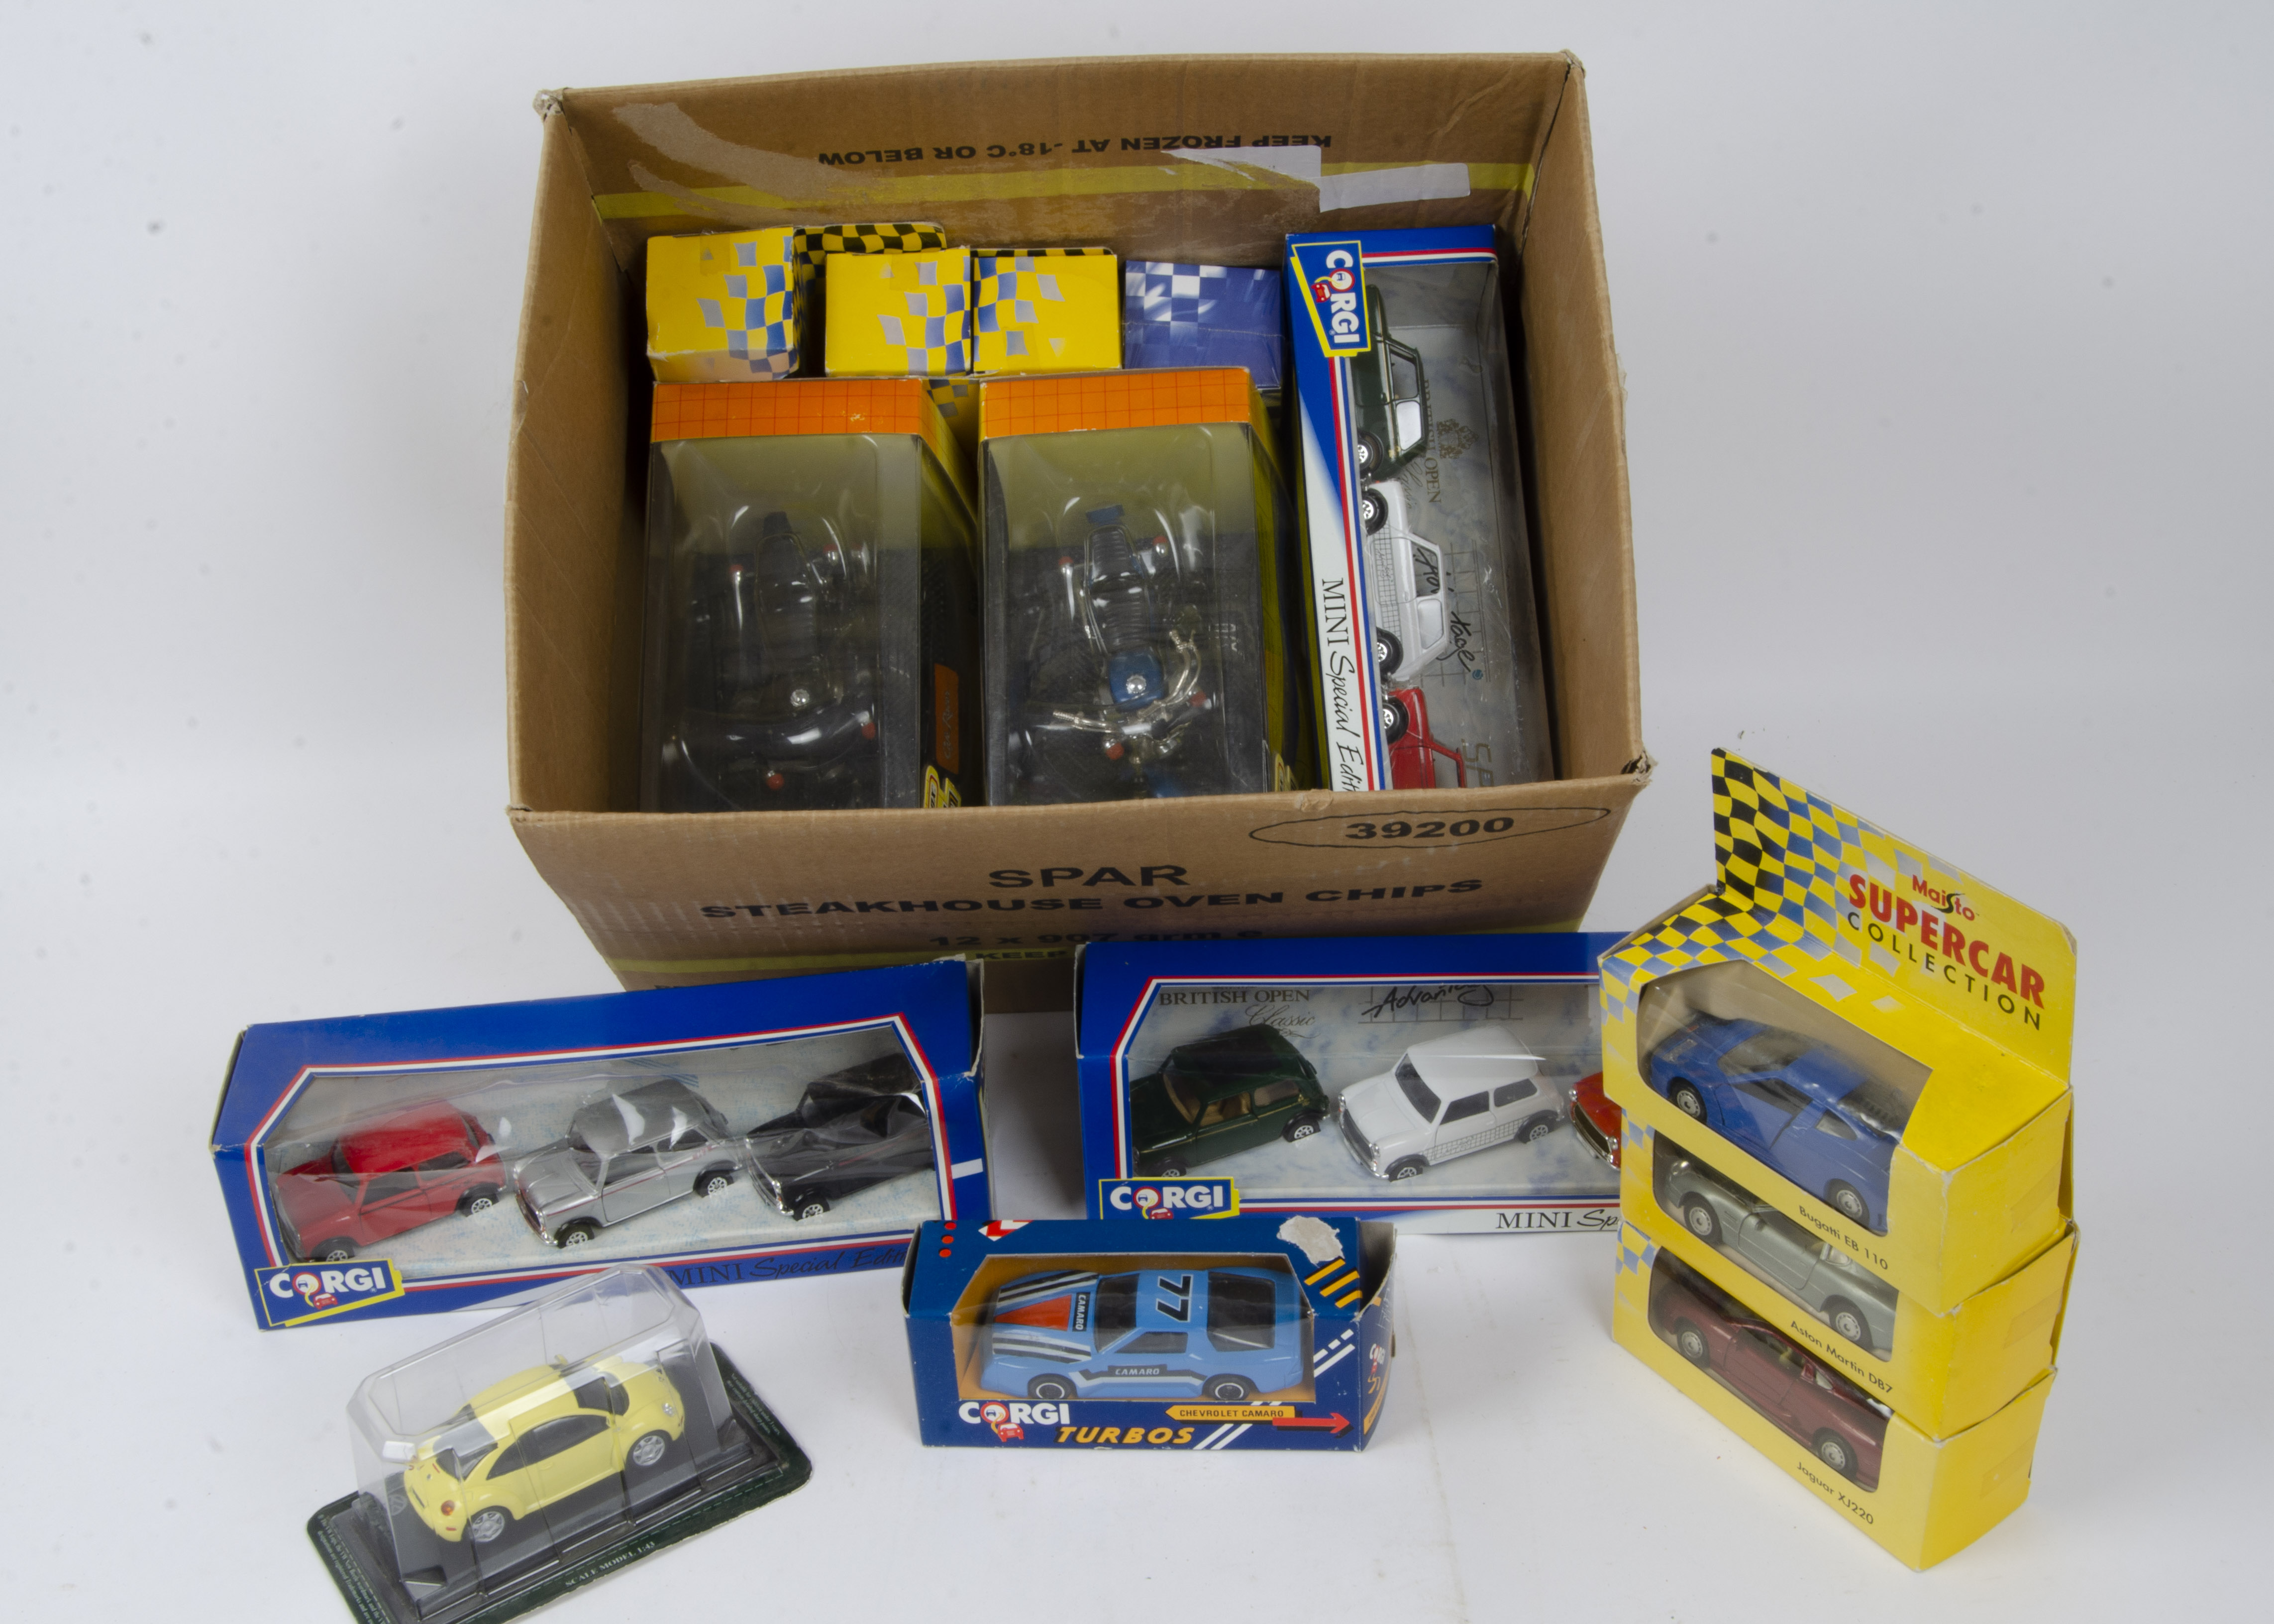 Modern Diecast 1:15 Scale and Smaller, a boxed collection of private and competition vehicles